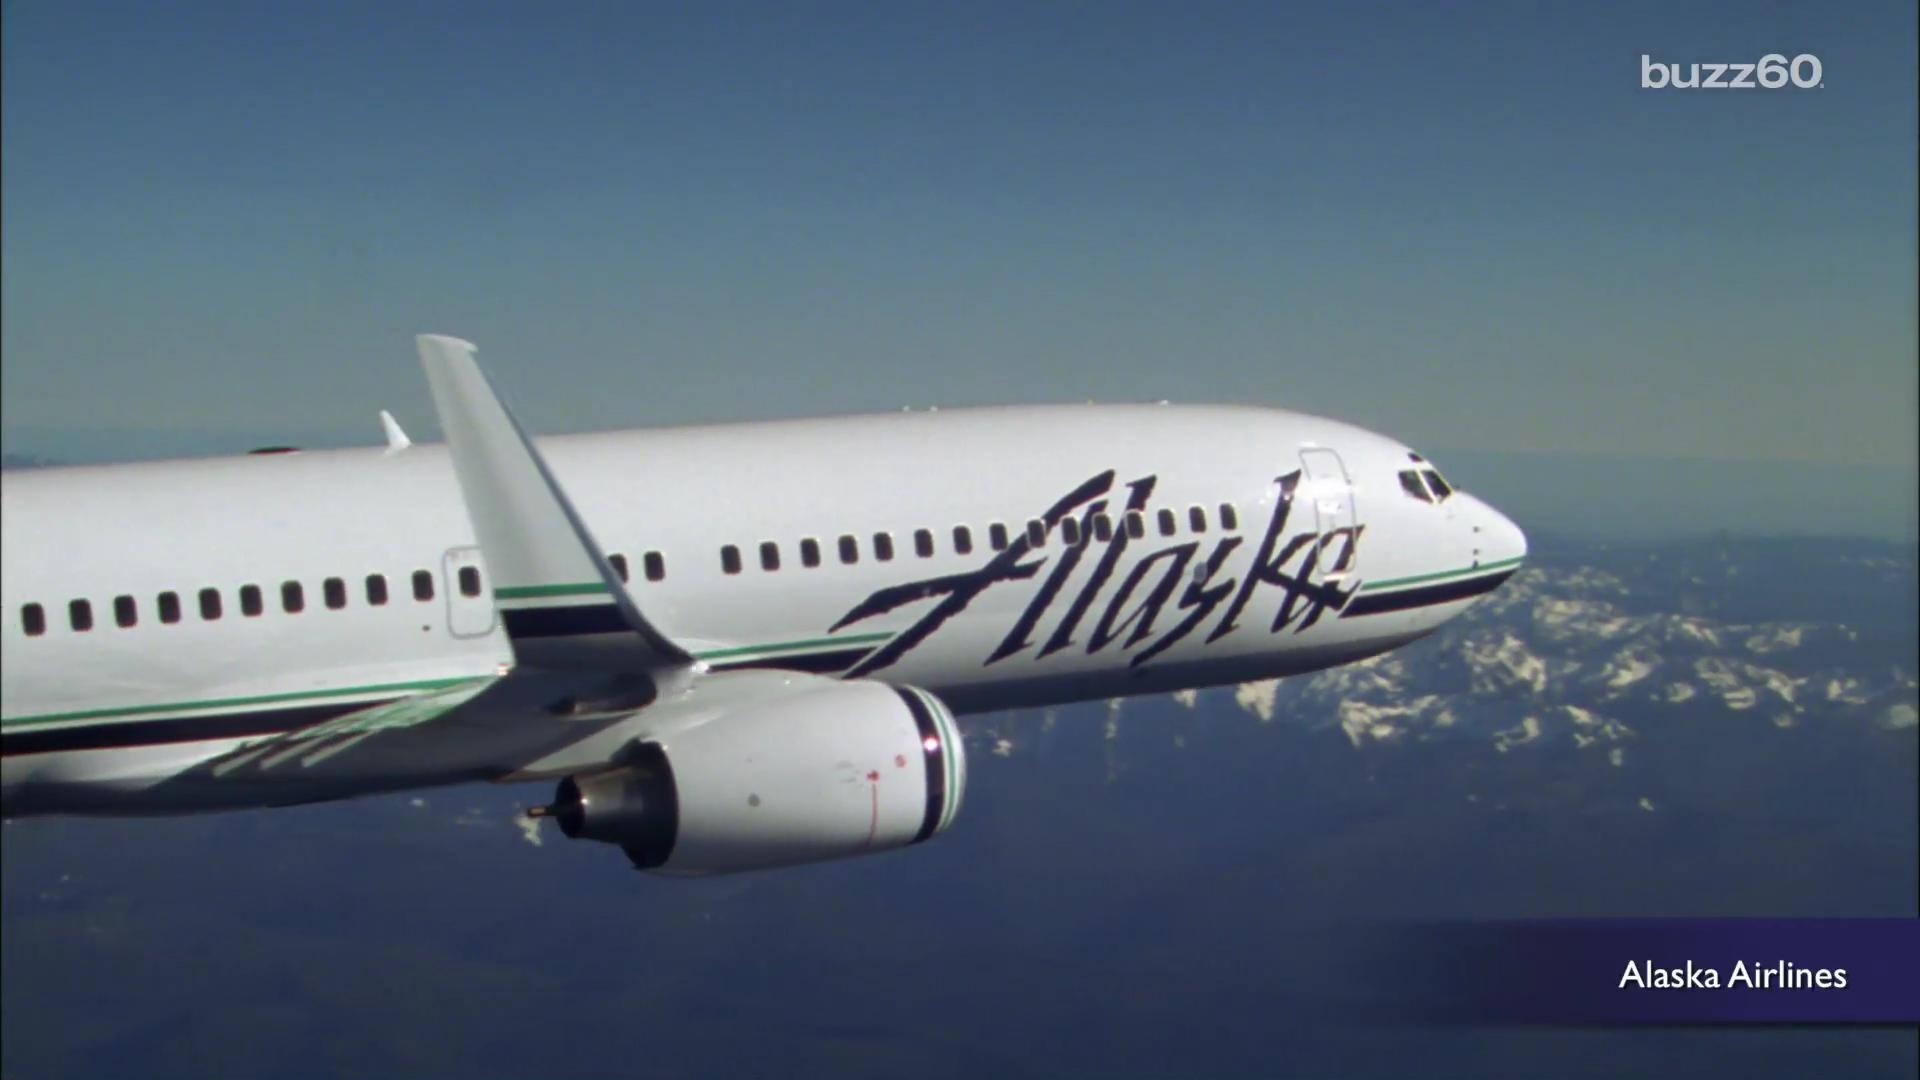 Alaska Airlines CEO Brad Tilden admitted despite his airline's baggage guarantee, Alaska even lost his bag on his way to an airline summit. Jen Markham (@jenmarkham) has the story.